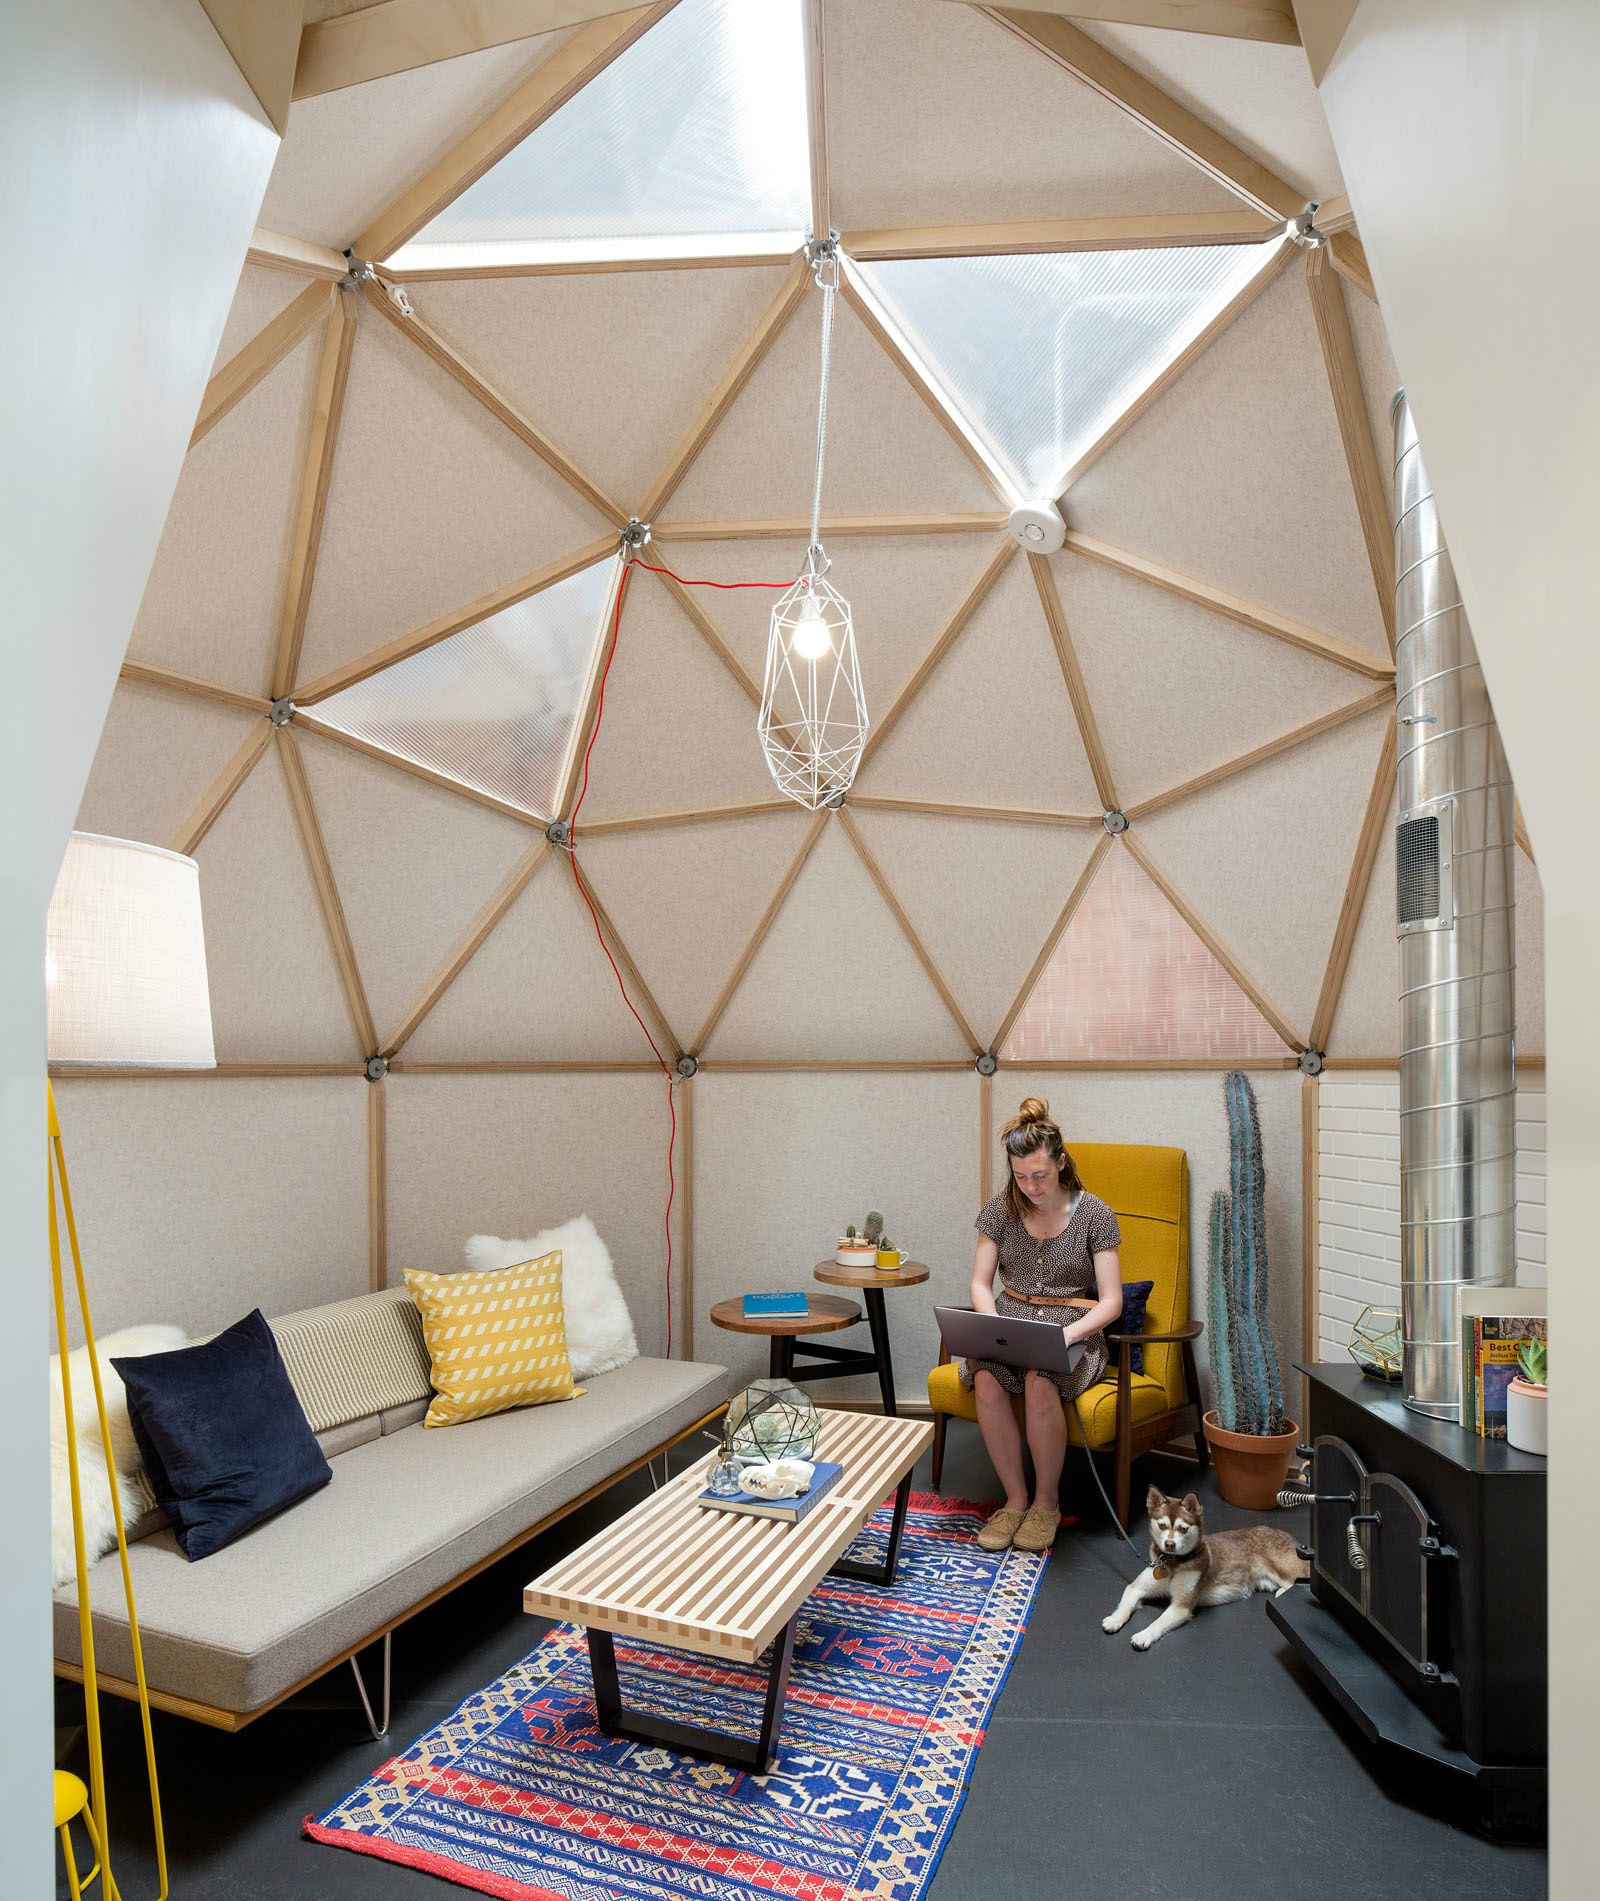 Dome Home Interiors: Airbnb CX Hub,Phase II